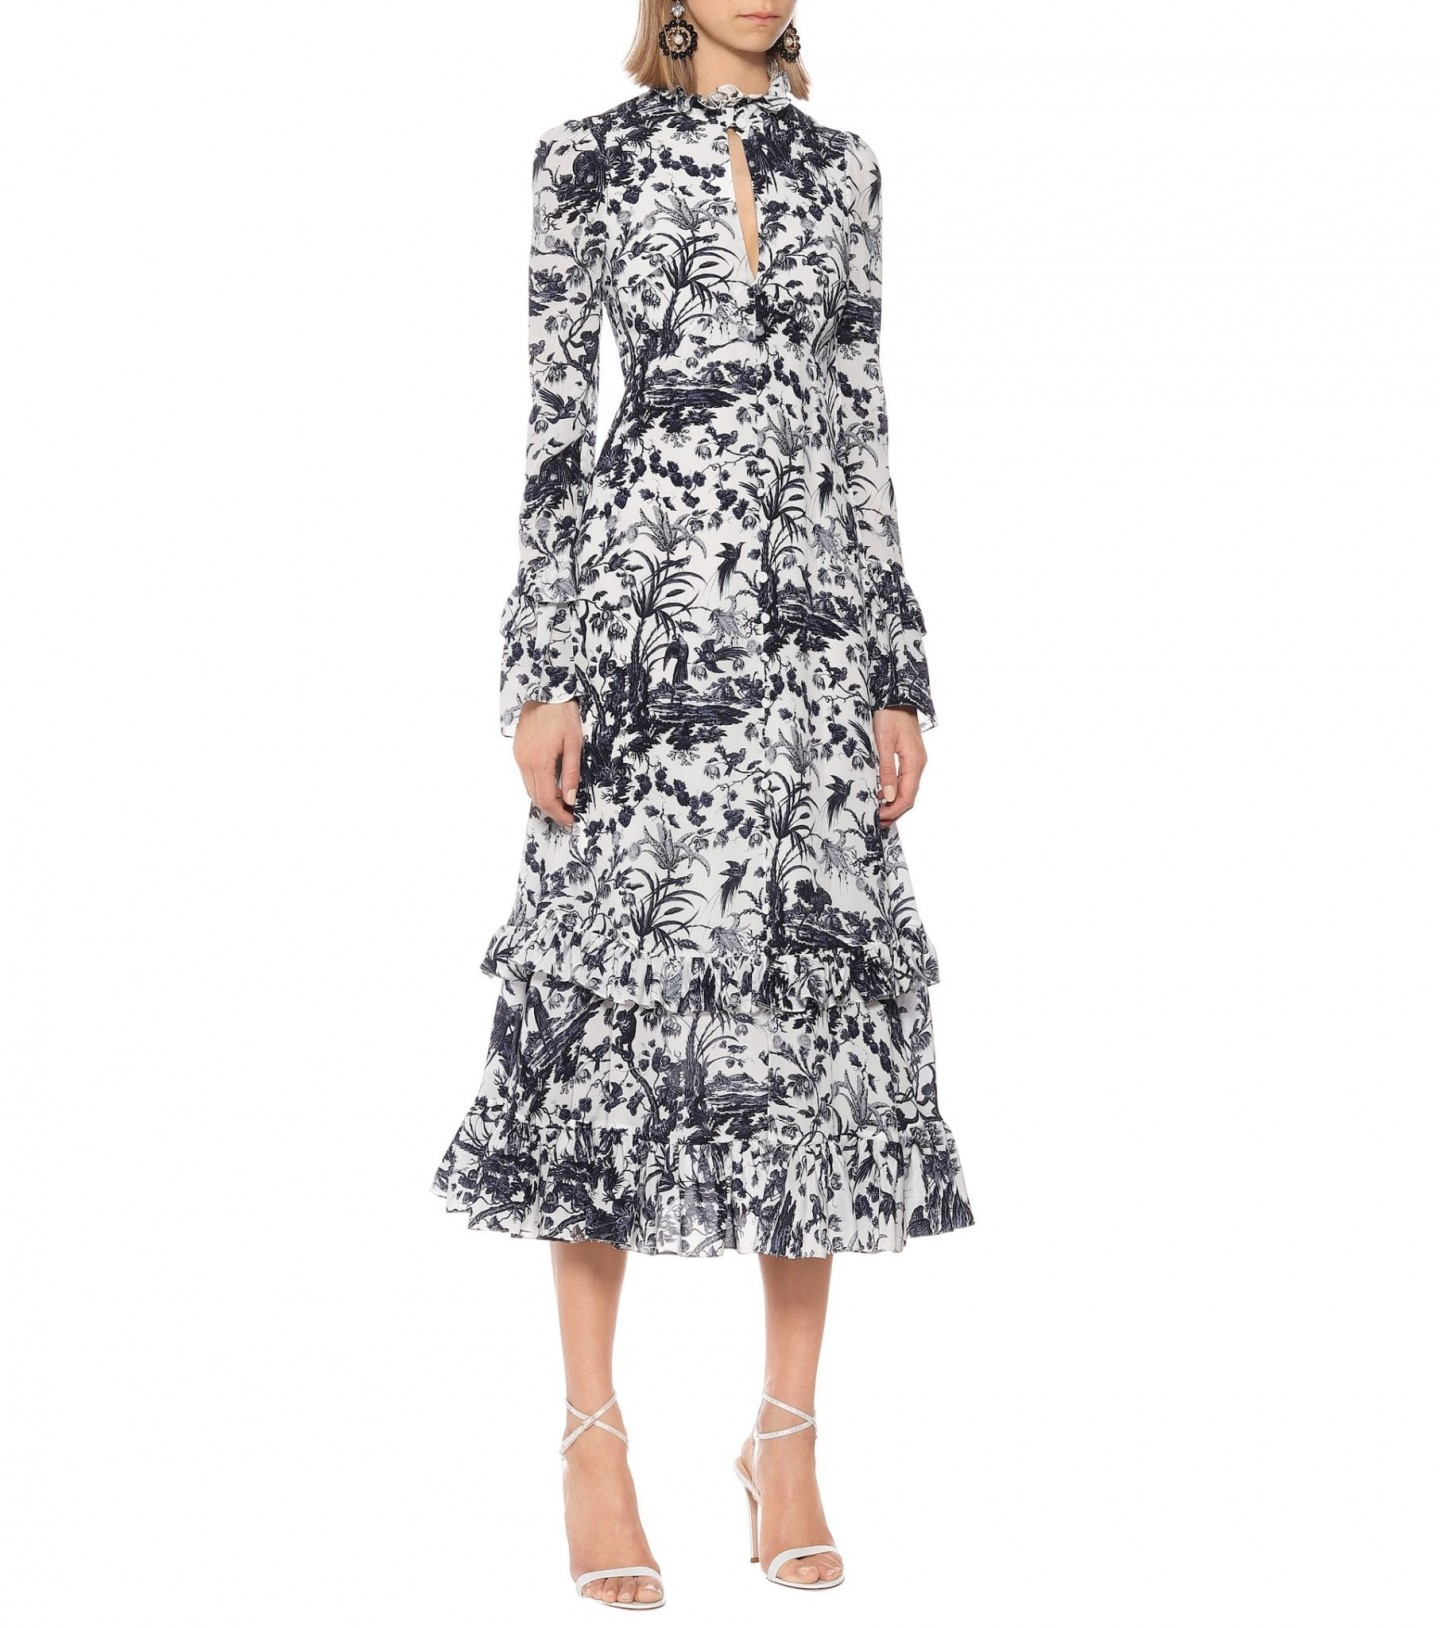 ERDEM Miguella Floral Silk Dress